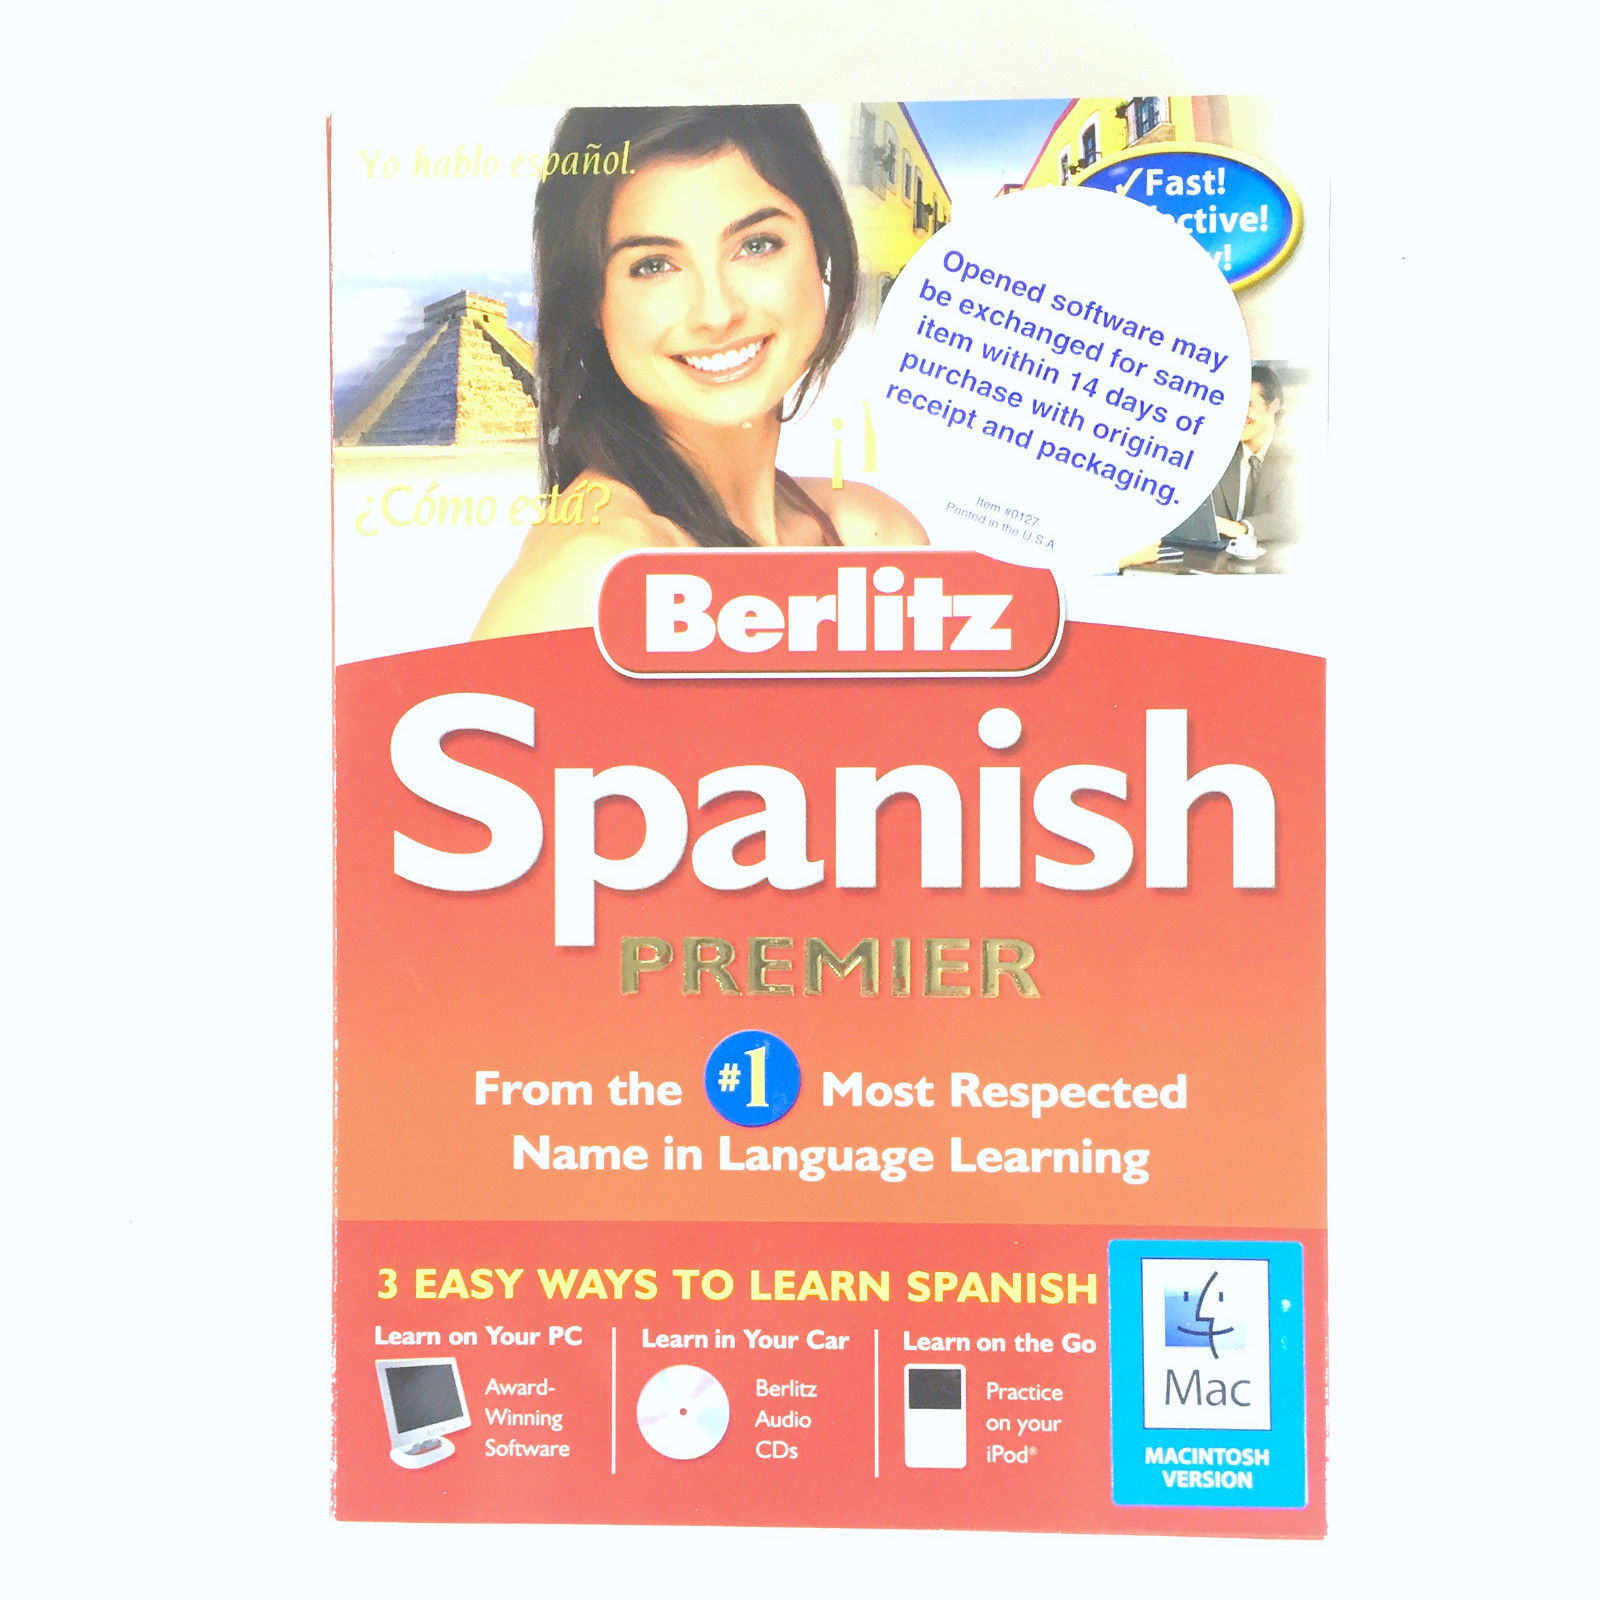 Berlitz Spanish Premier - YouTube